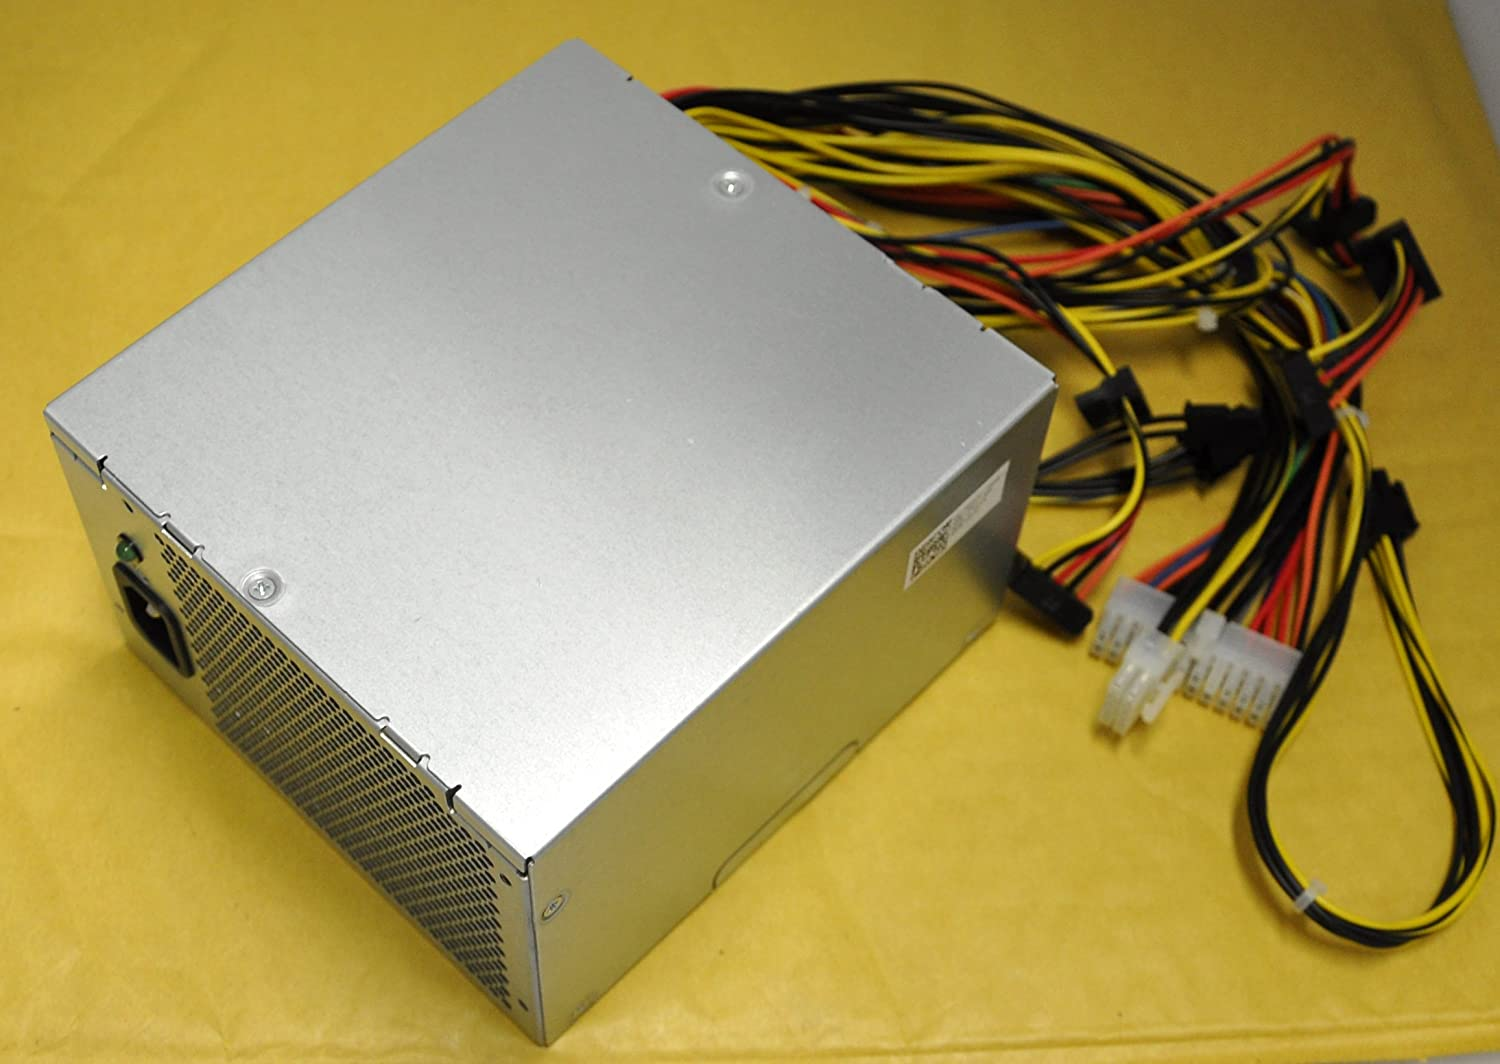 Genuine Dell 475W Power Supply PSU 435 Studio MT 8000 For New Shipping Free XPS Japan Maker New